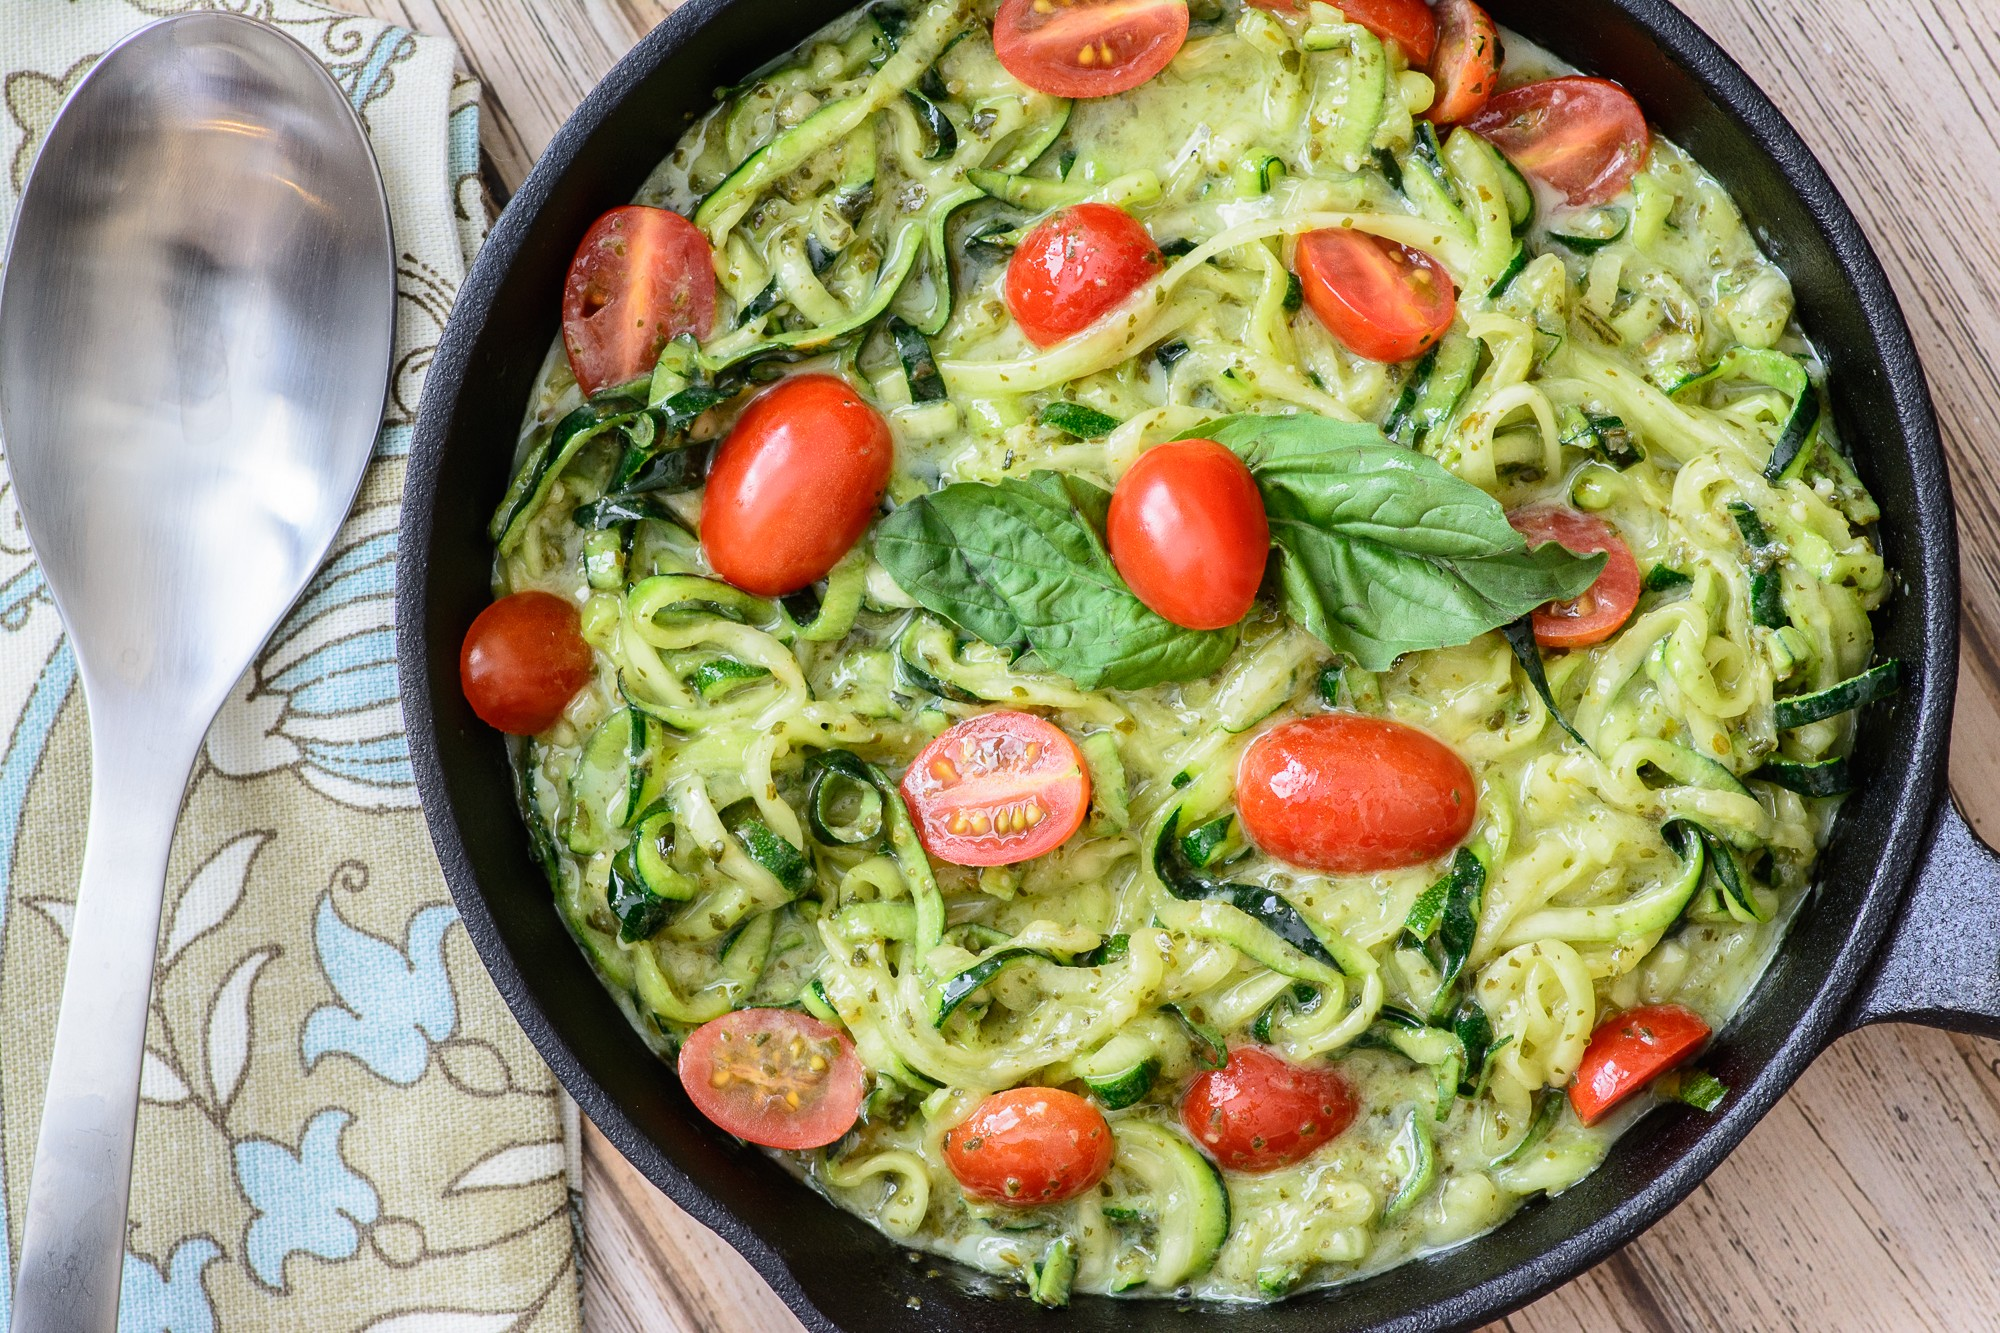 Creamy pesto with fresh zucchini noodles. These are a healthy, low carb, paleo and gluten free alternative to regular noodles. You won't even miss the pasta! Arguably the best zoodle recipe out there.